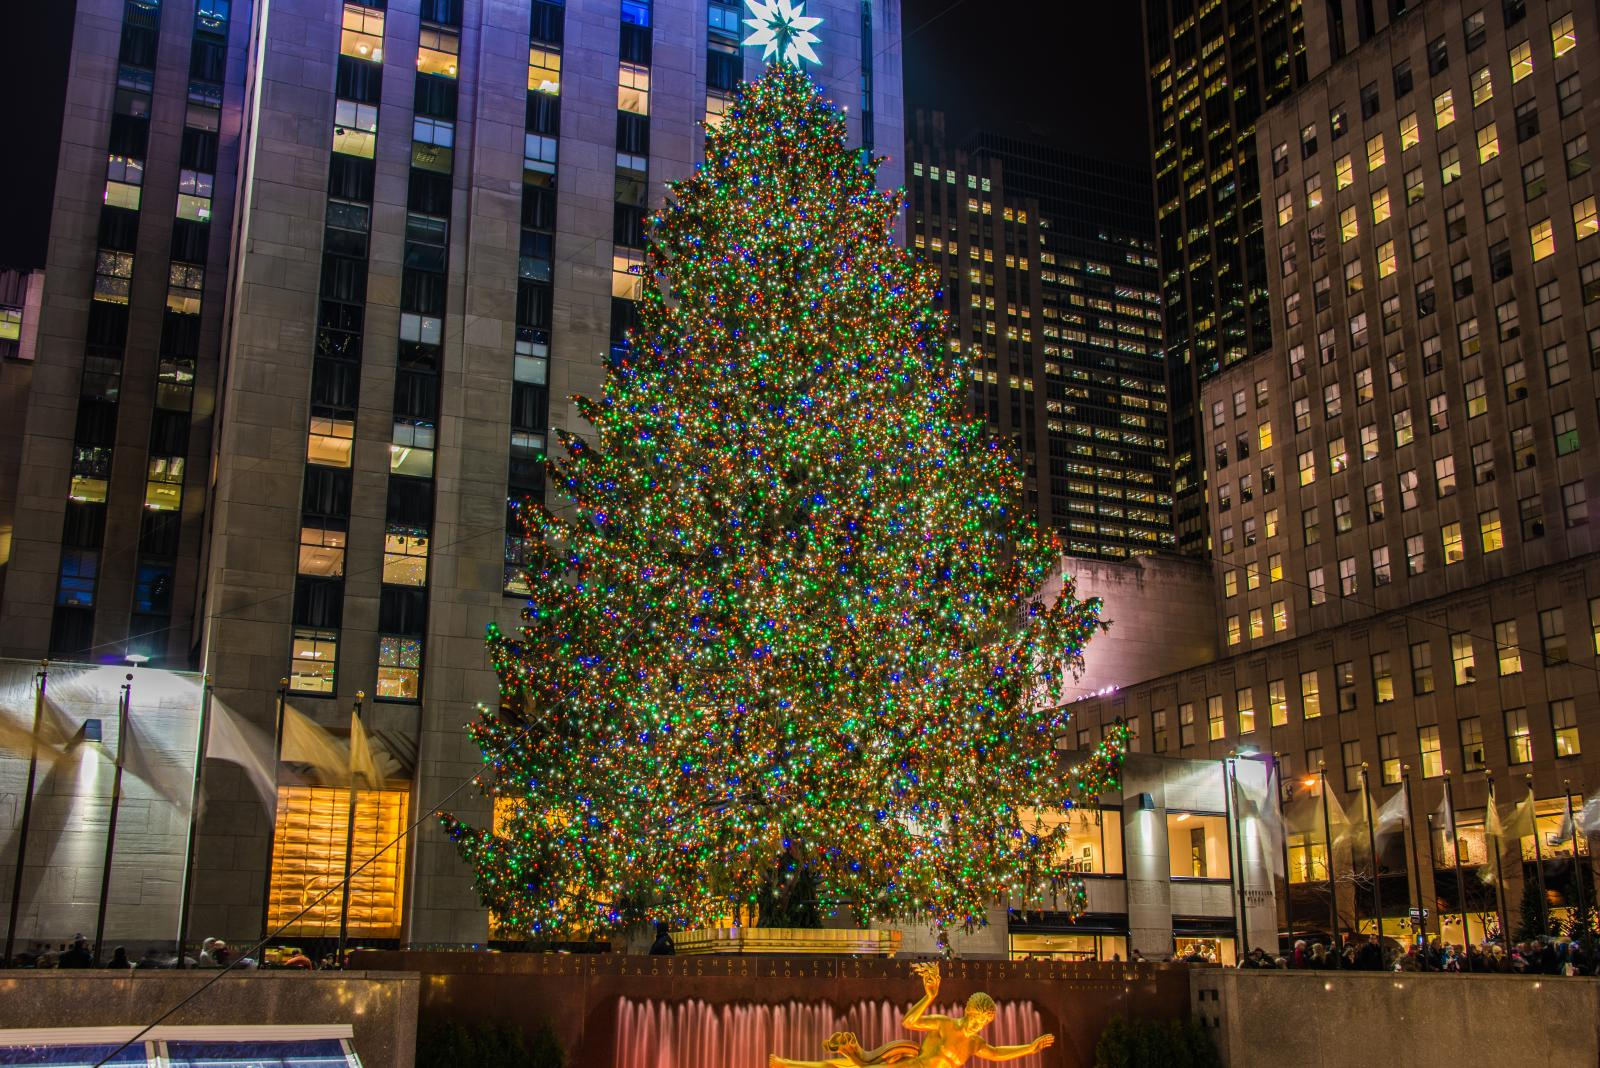 Where Is The Rockefeller Christmas Tree Coming From 2019 ▷ The Rockefeller Christmas Tree 2019 | Our Top 10 Facts